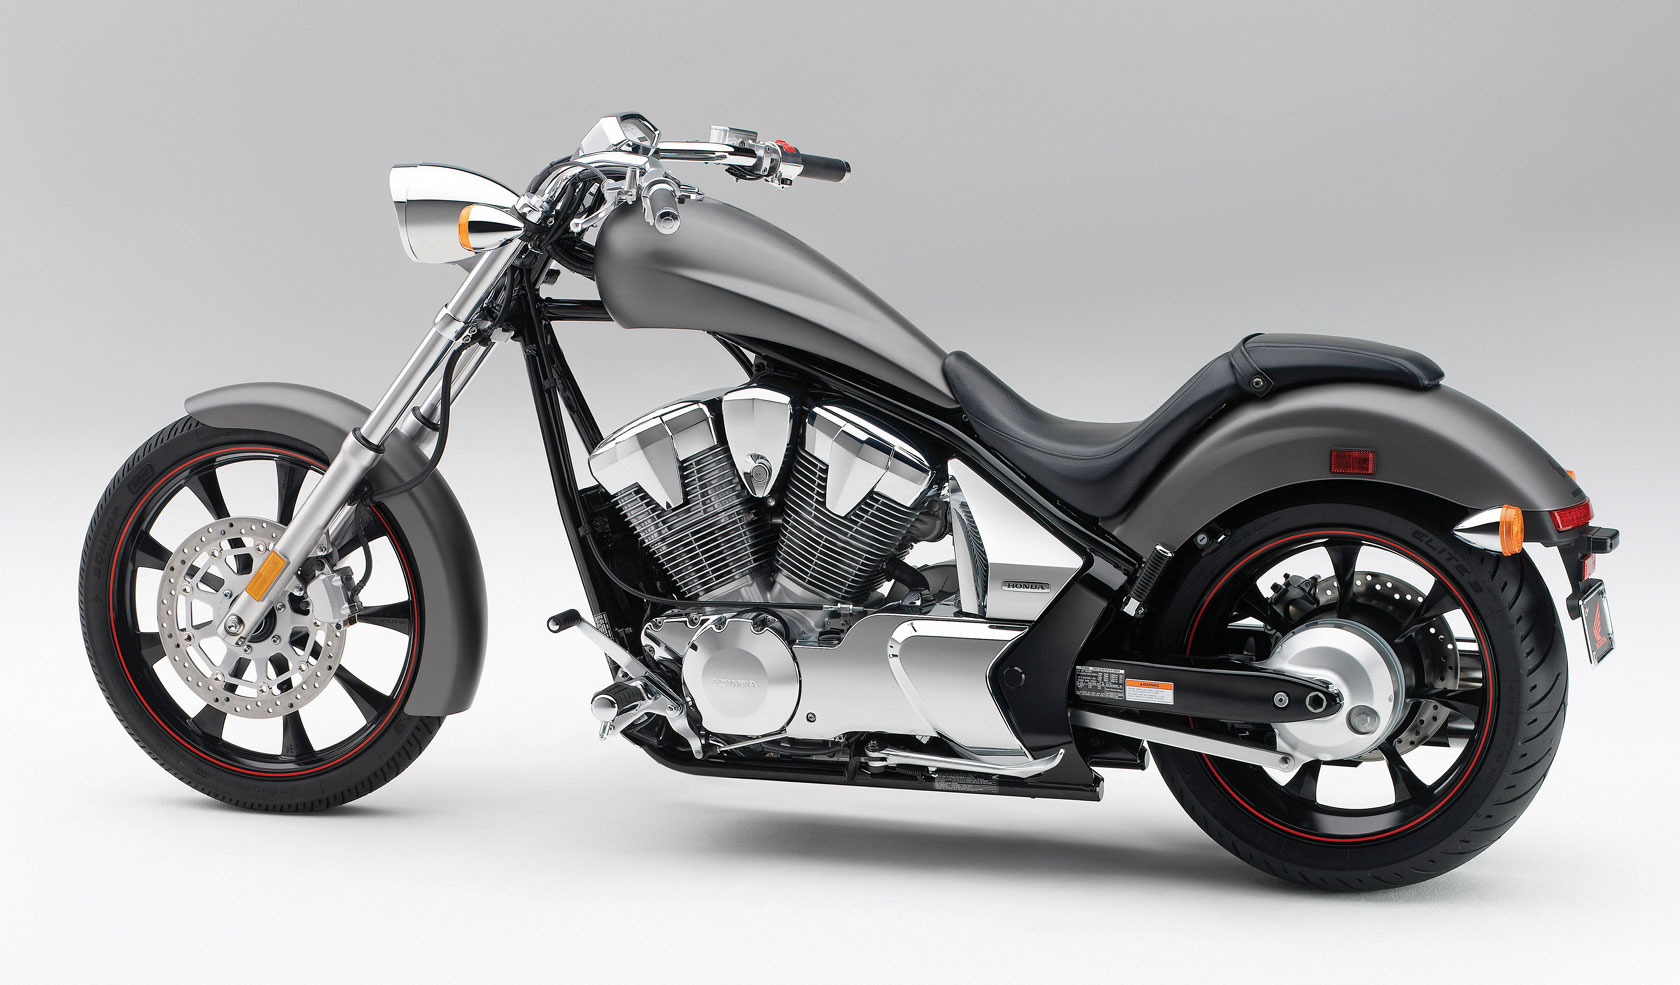 Honda Fury ABS 2010 #3